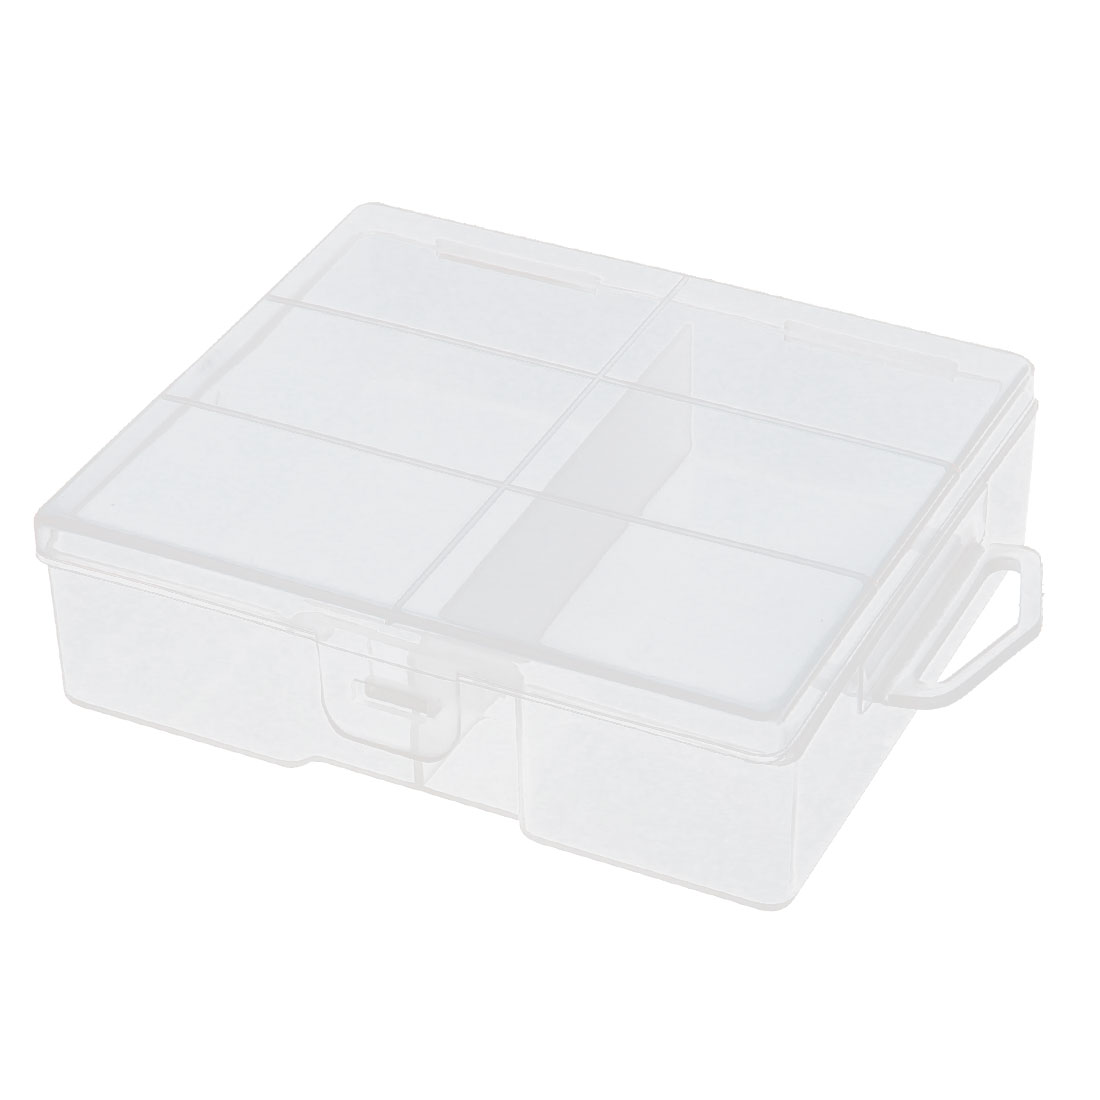 Clear Plastic Storage Box Container Holder Organizer for 24 x AA Battery Batteries